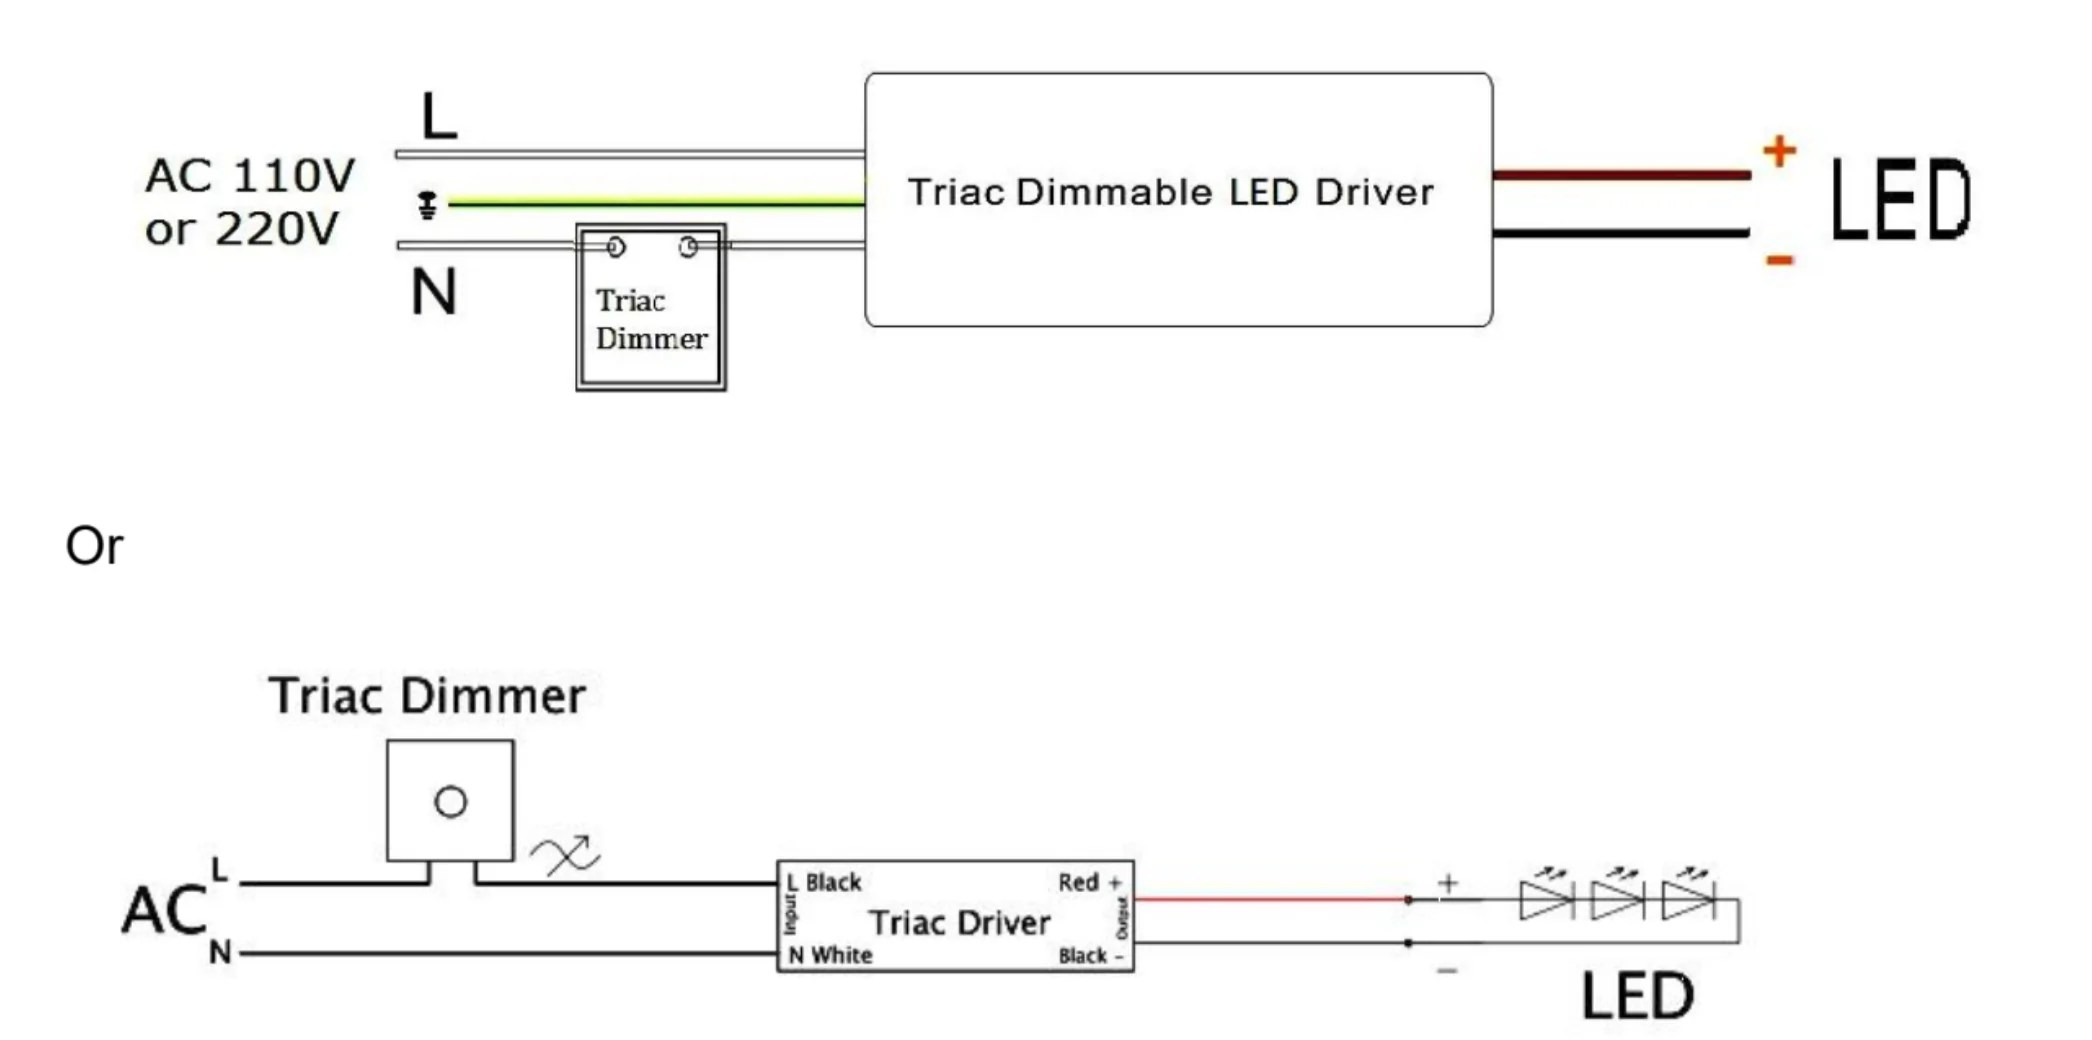 triac dimmable power supply for led strip waveform lighting dimming [ 2092 x 1040 Pixel ]